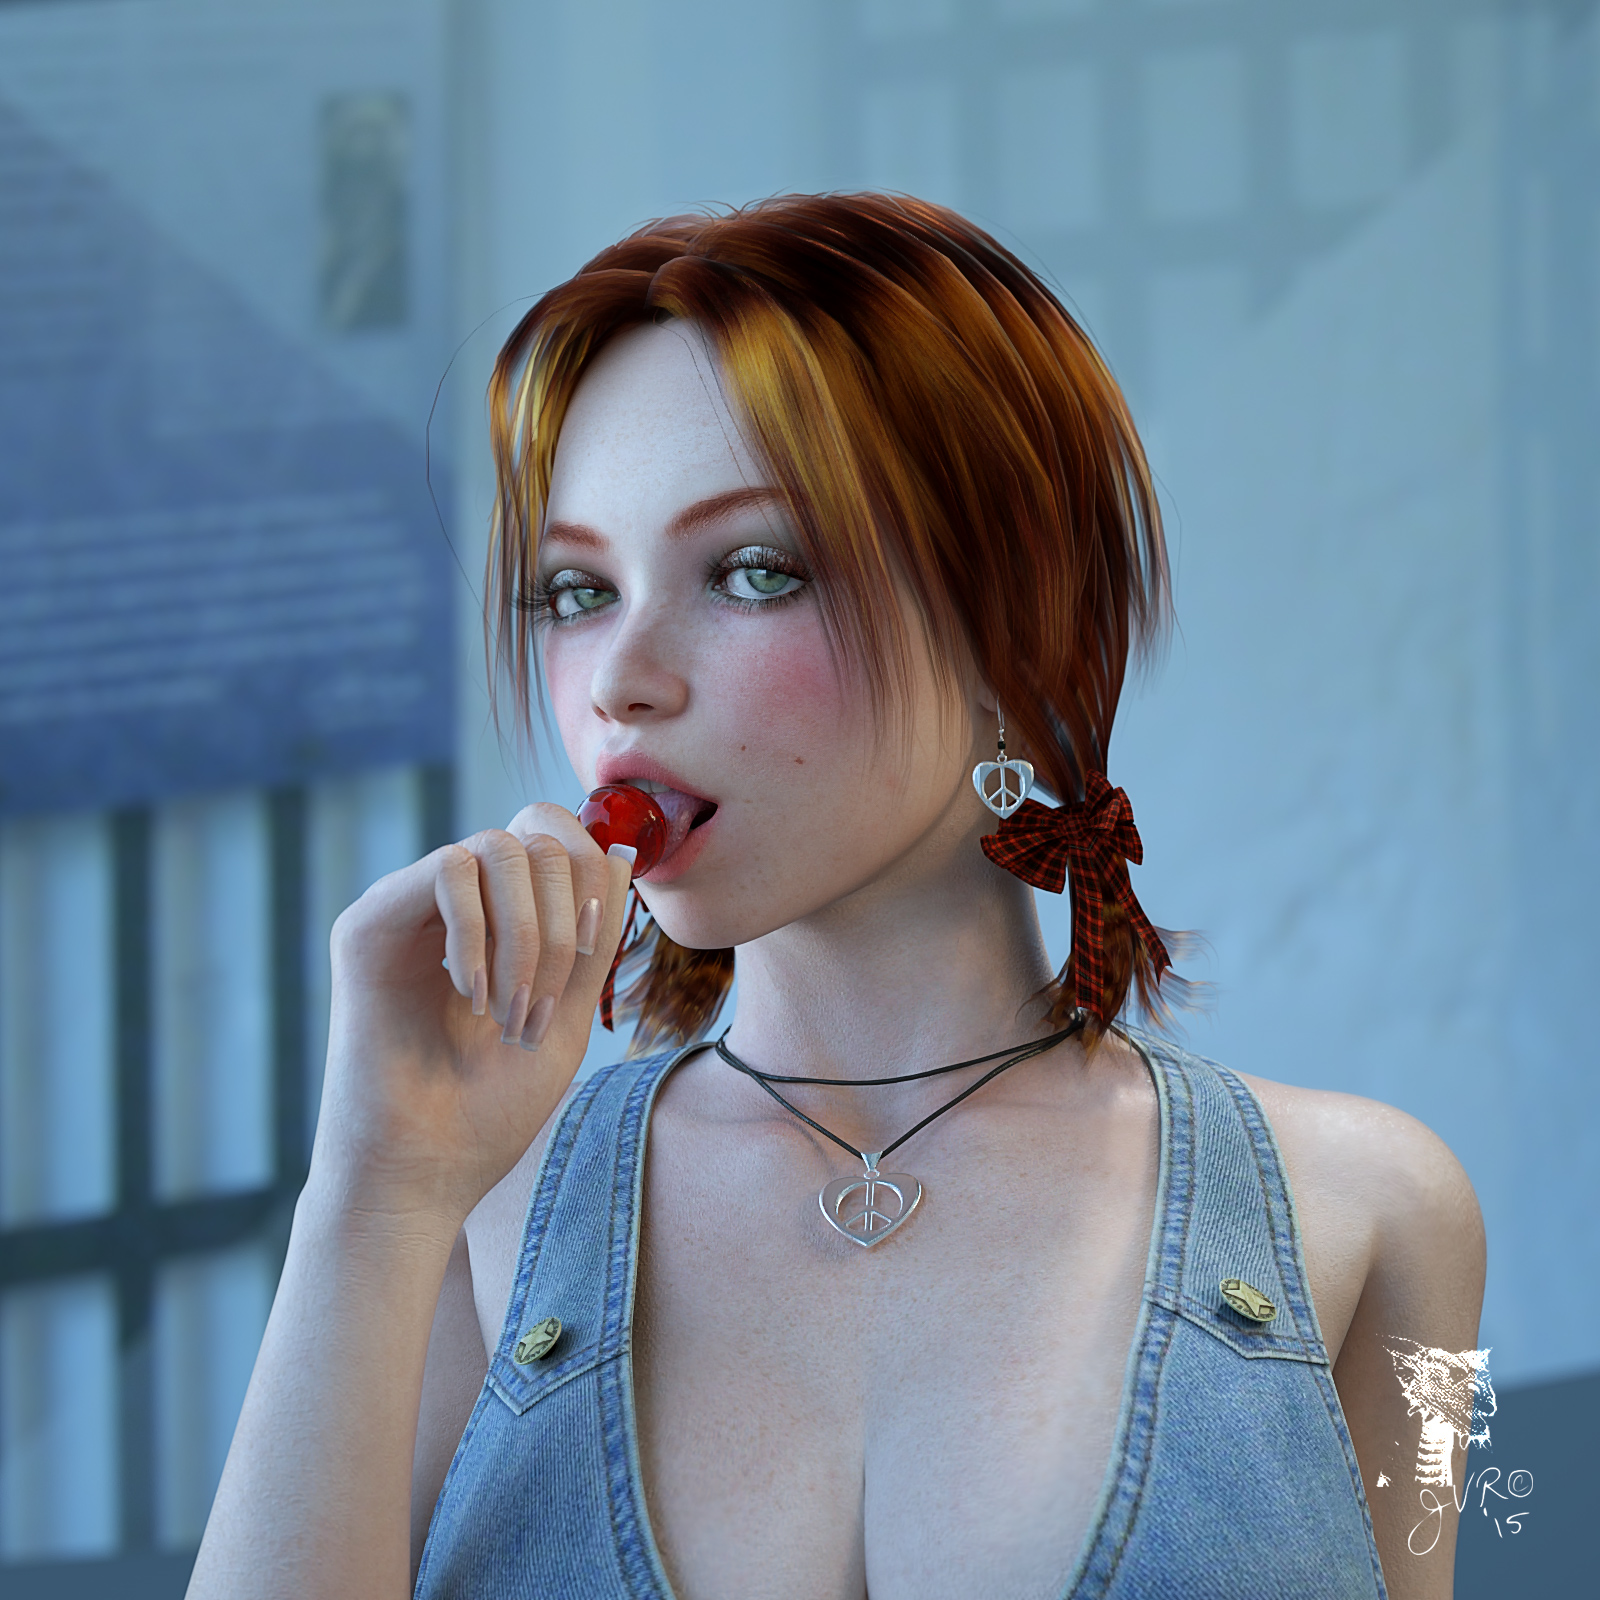 Cherry Lollipop by JVRenderer